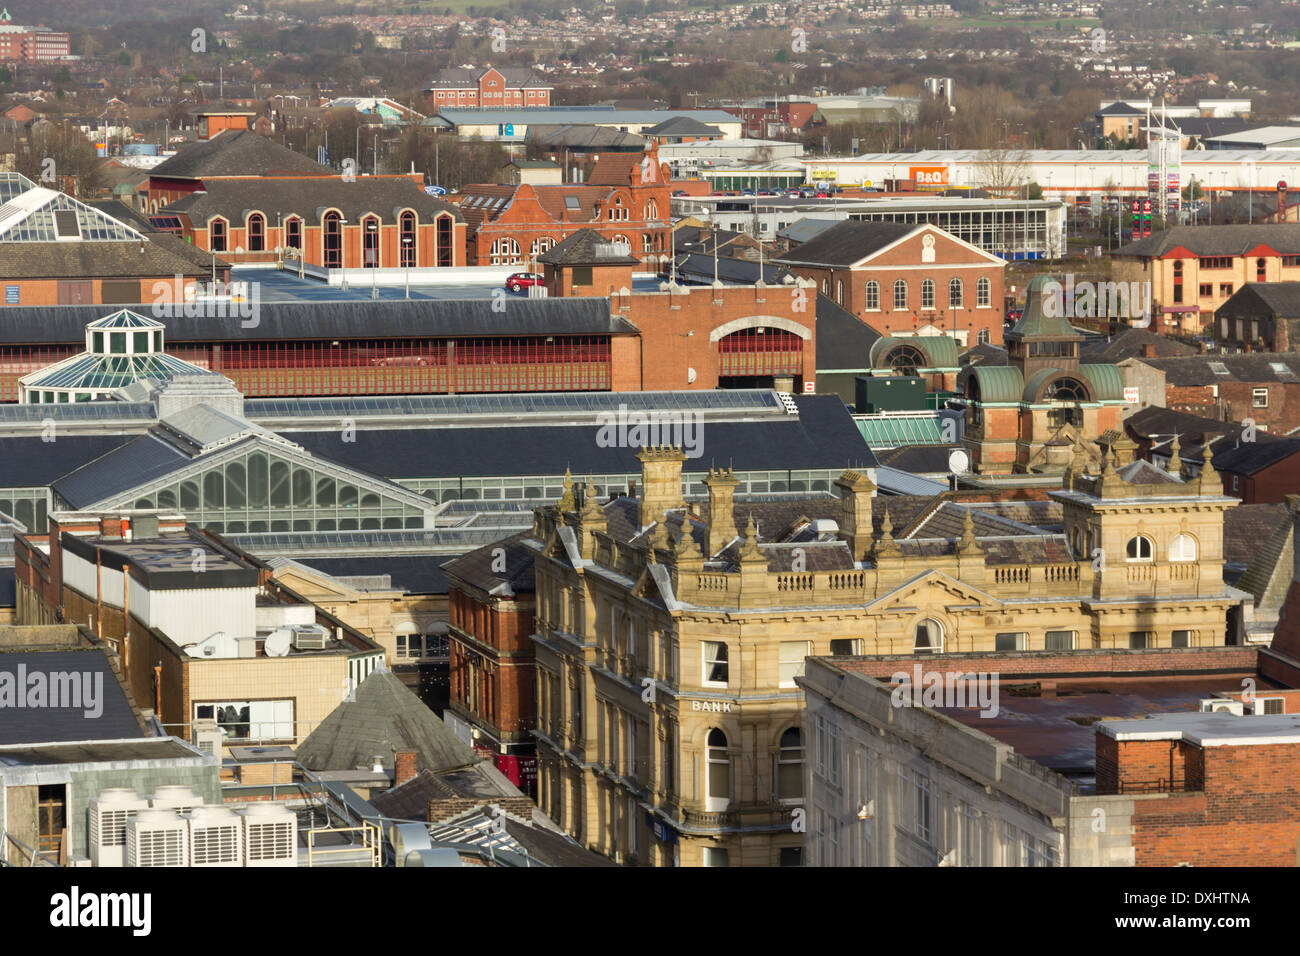 Rooftops of Bolton town centre looking north from Victoria square, dominated by the RBS bank building and The Market Place. - Stock Image